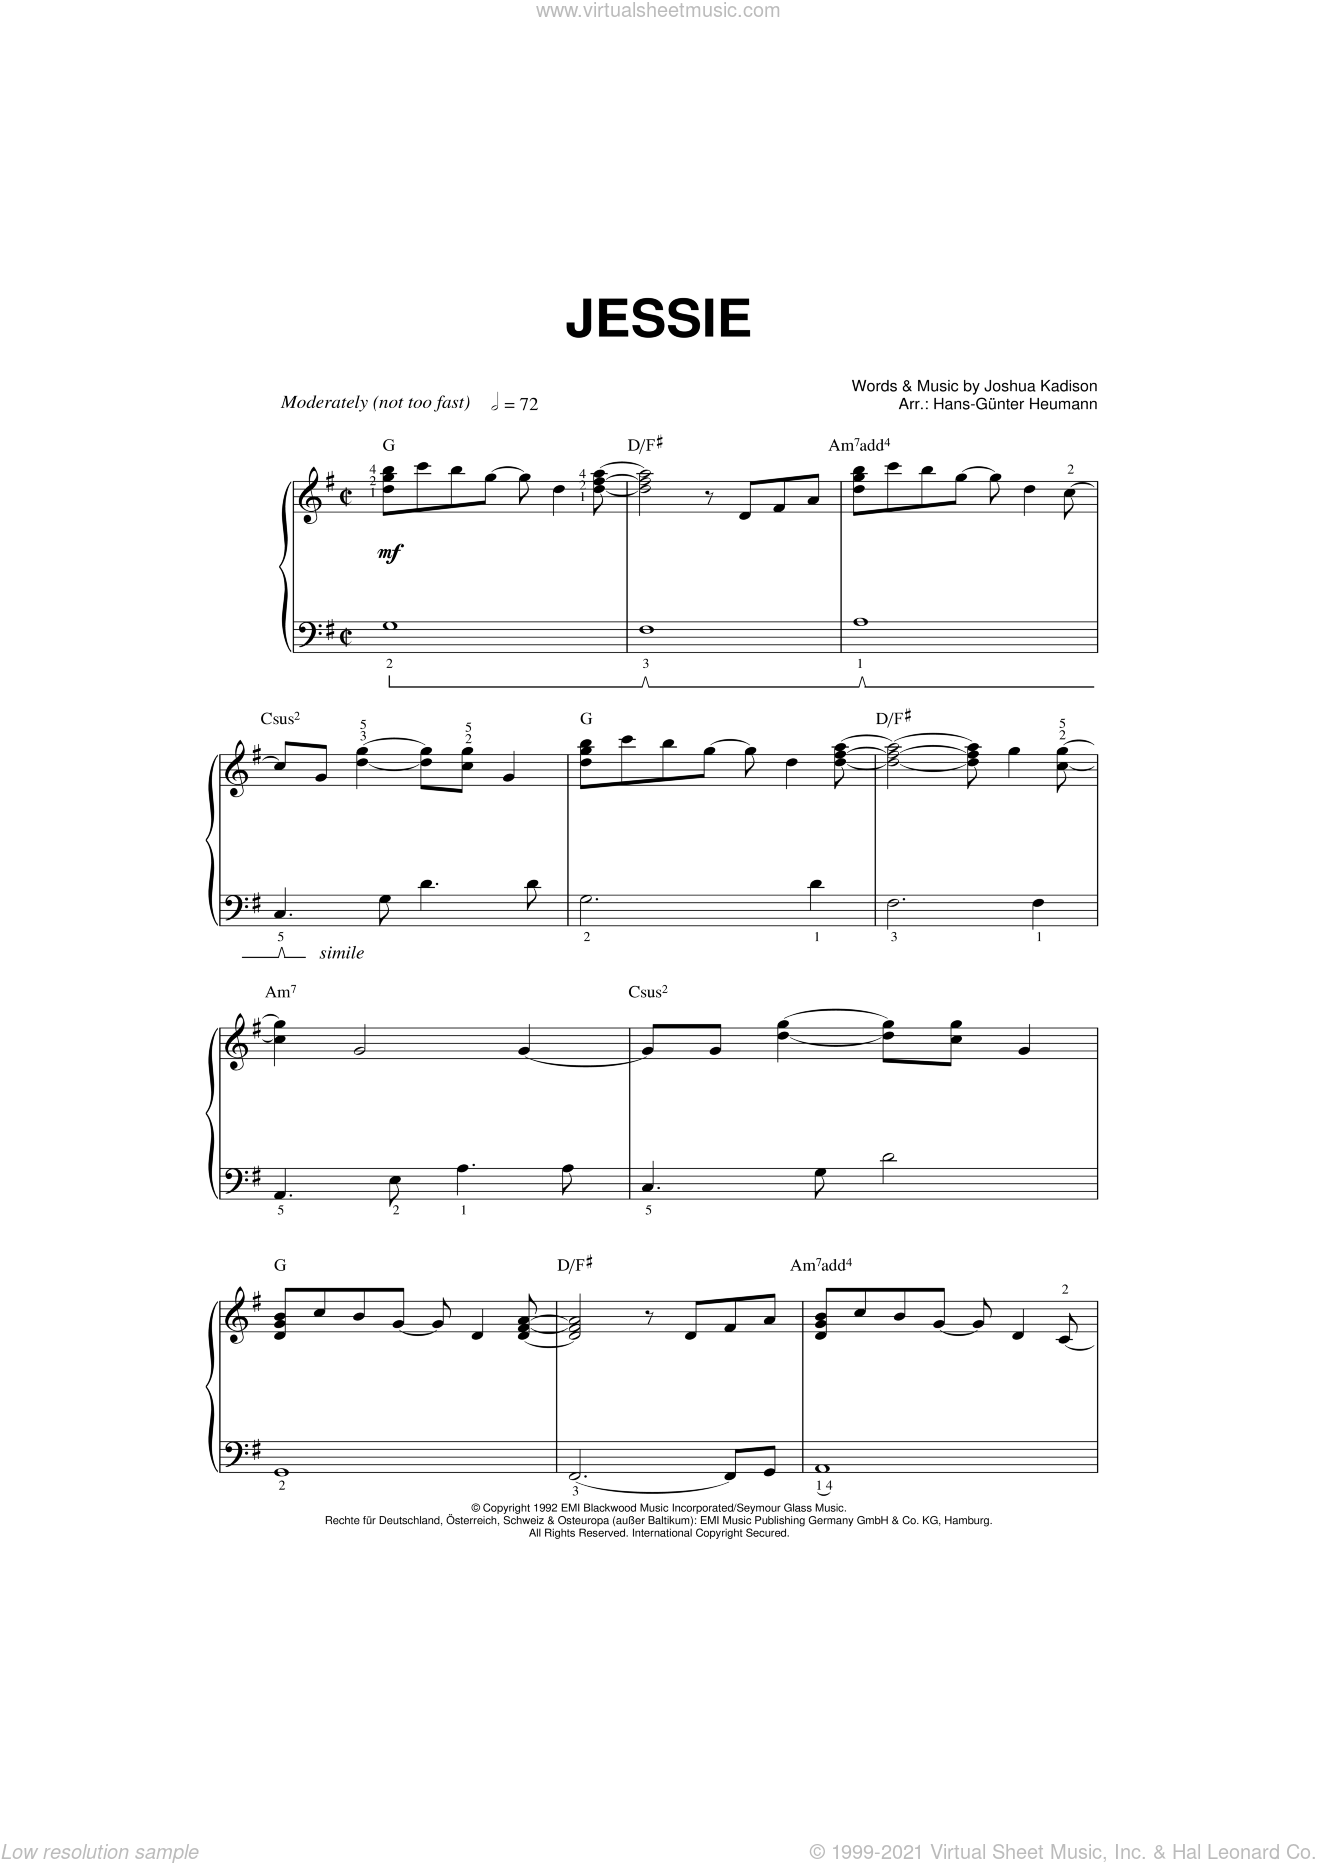 Jessie sheet music for piano solo (chords) by Joshua Kadison